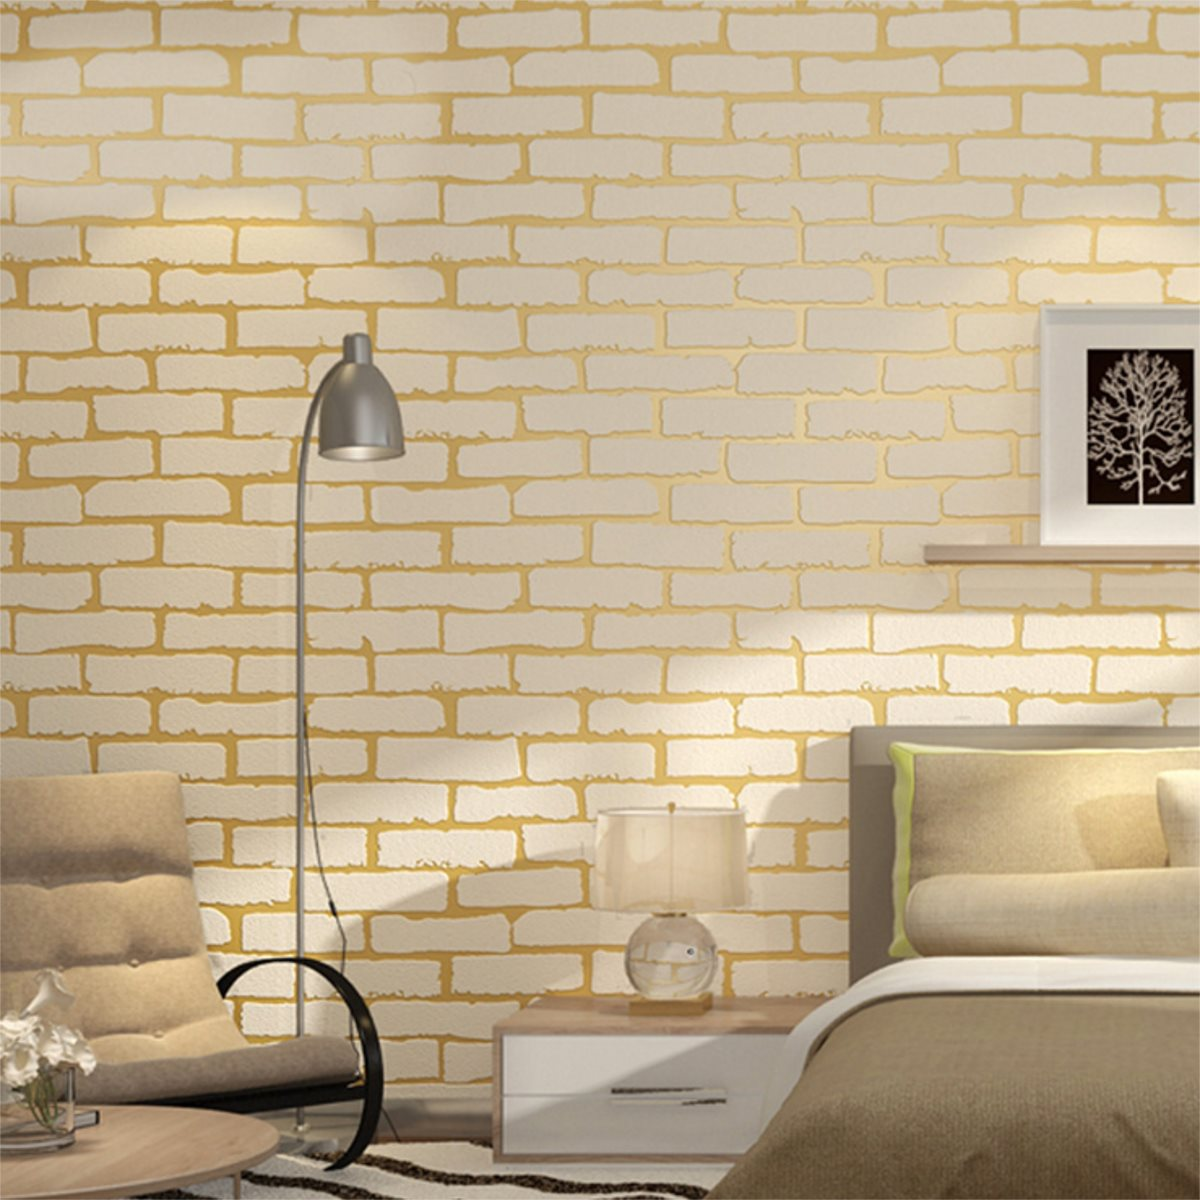 Wall Covering For Living Room Online Get Cheap Stone Wall Cover Aliexpresscom Alibaba Group